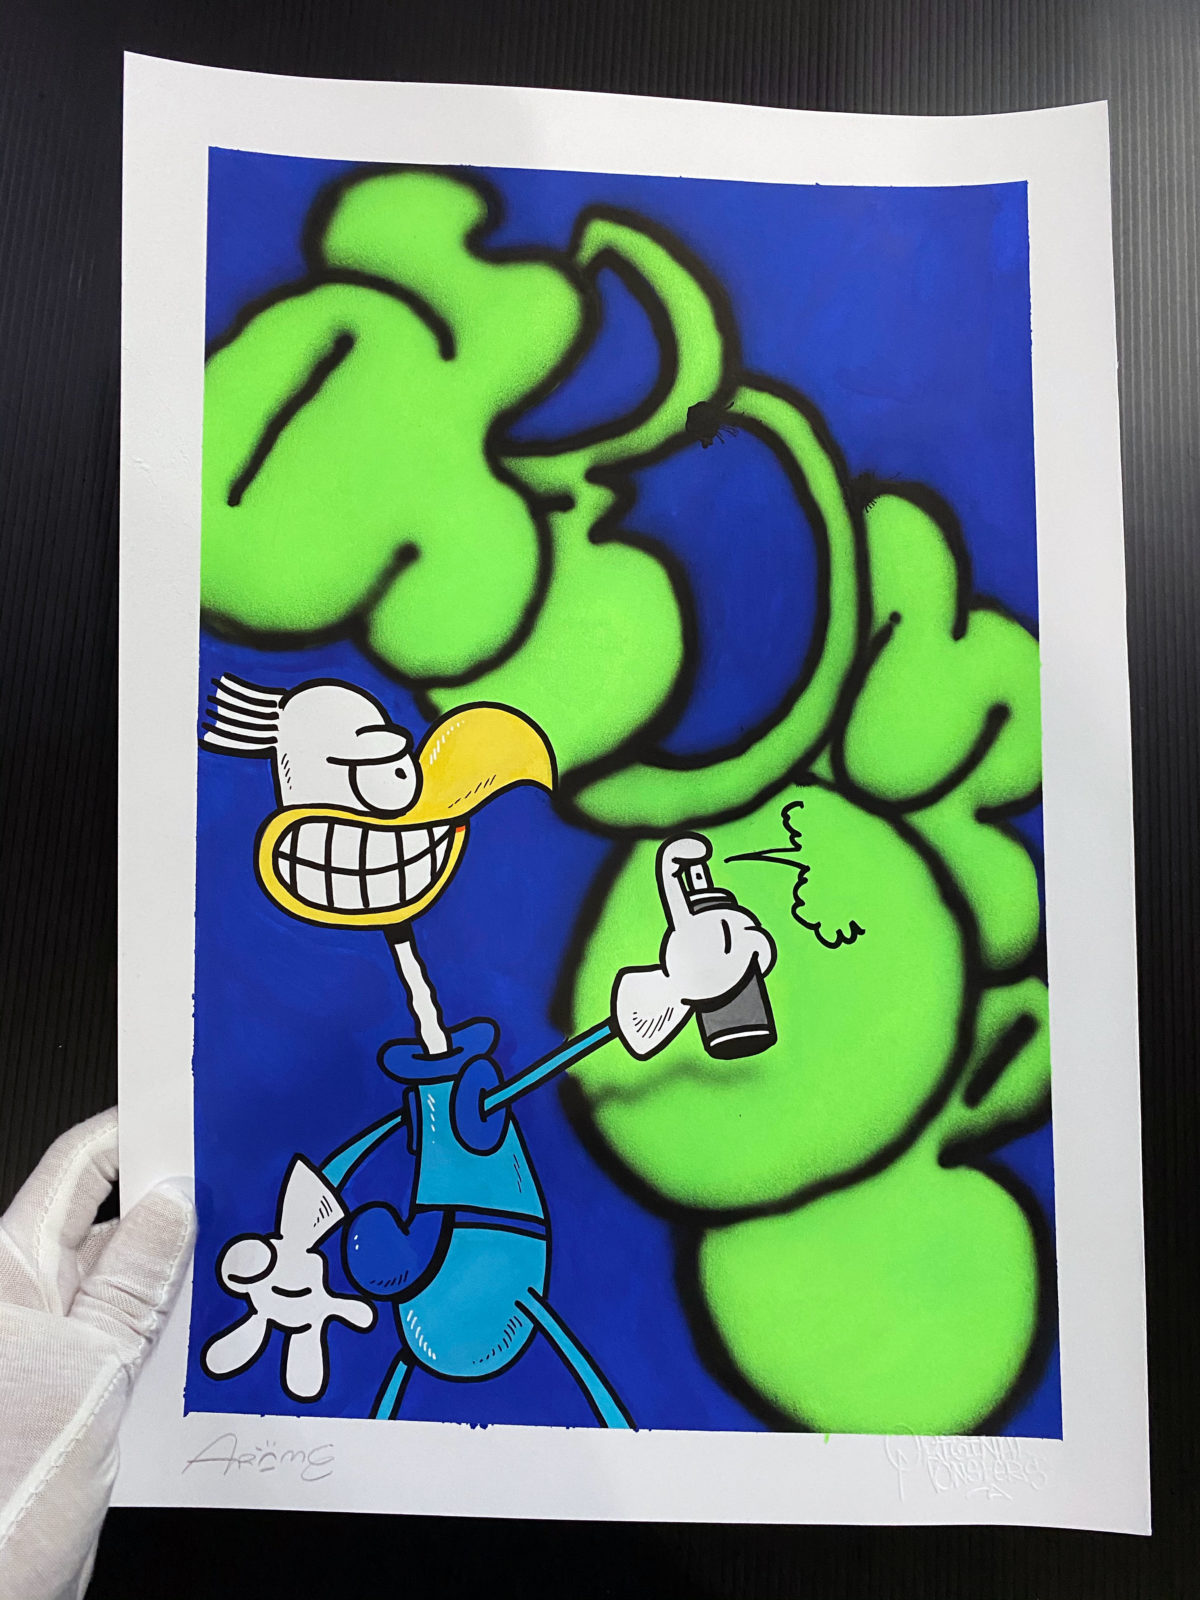 Illustrazione THROW-UP 31 by Arome